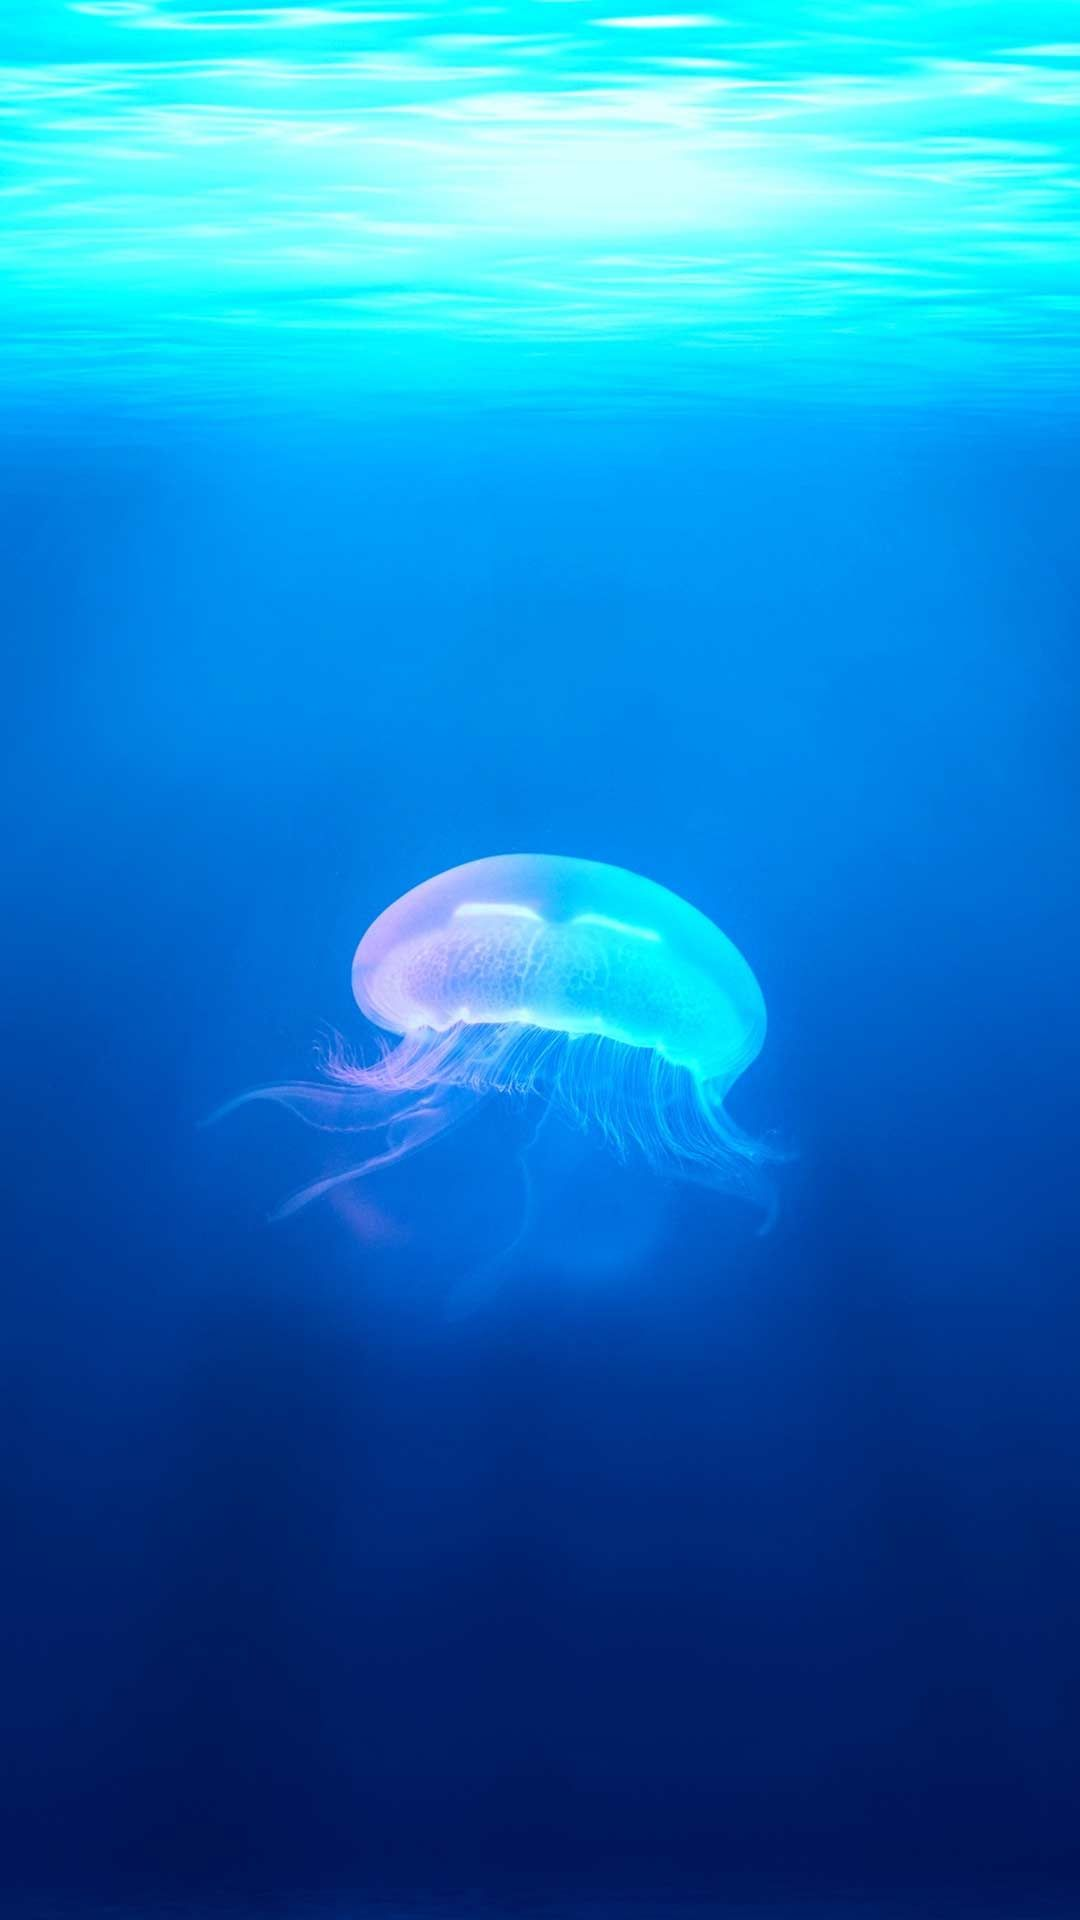 30 Blue Ocean Wallpaper Phone Backgrounds For Android Free Download With Images Jellyfish Illustration Underwater Wallpaper Ocean Wallpaper